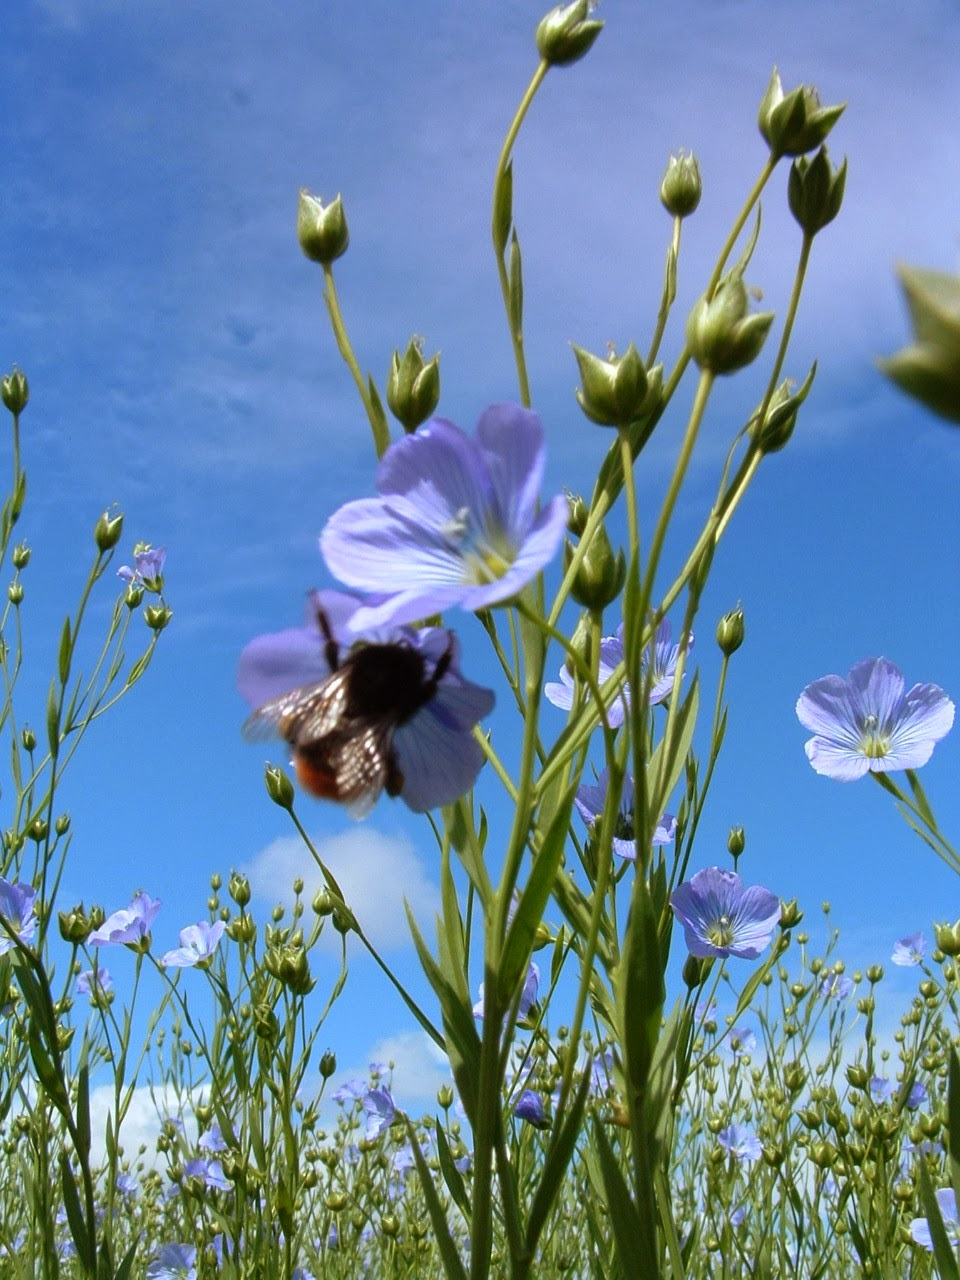 Flax  grows best at northern temperate latitudes, in cool,  humid climates and within moist, well-plowed soil.